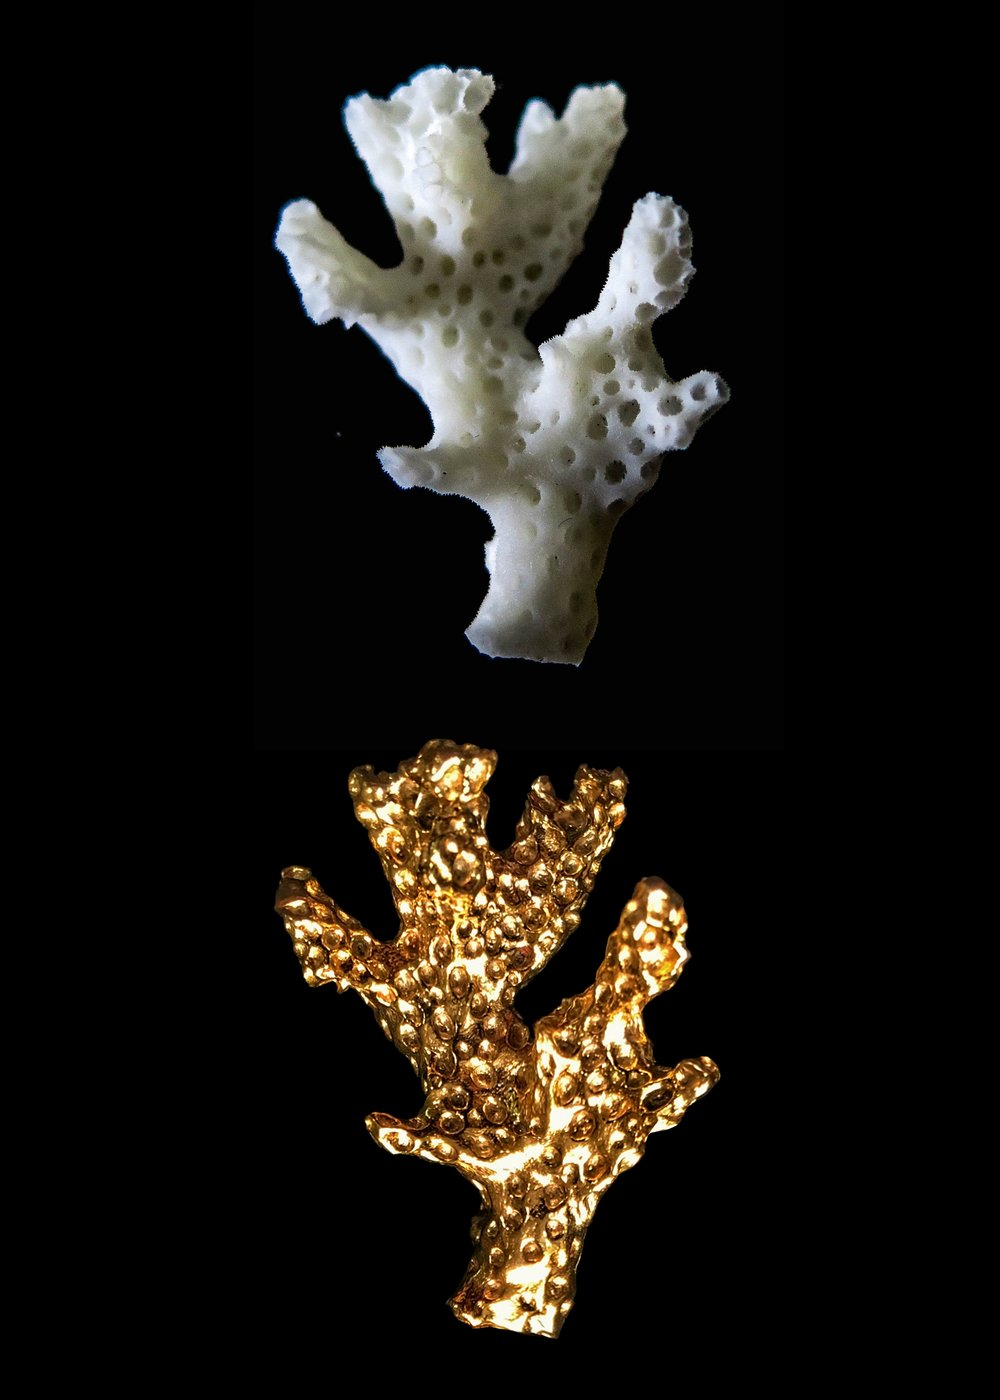 REPLICATE - Using our proprietary production techniques we can replicate coral specimens from your aquarium and work with you to design of a kind pieces. Creating custom pieces in this way directly connects your aquarium to positive environmental impact. The coral you nurture at home will help grow coral and rebuild reefs around the world.